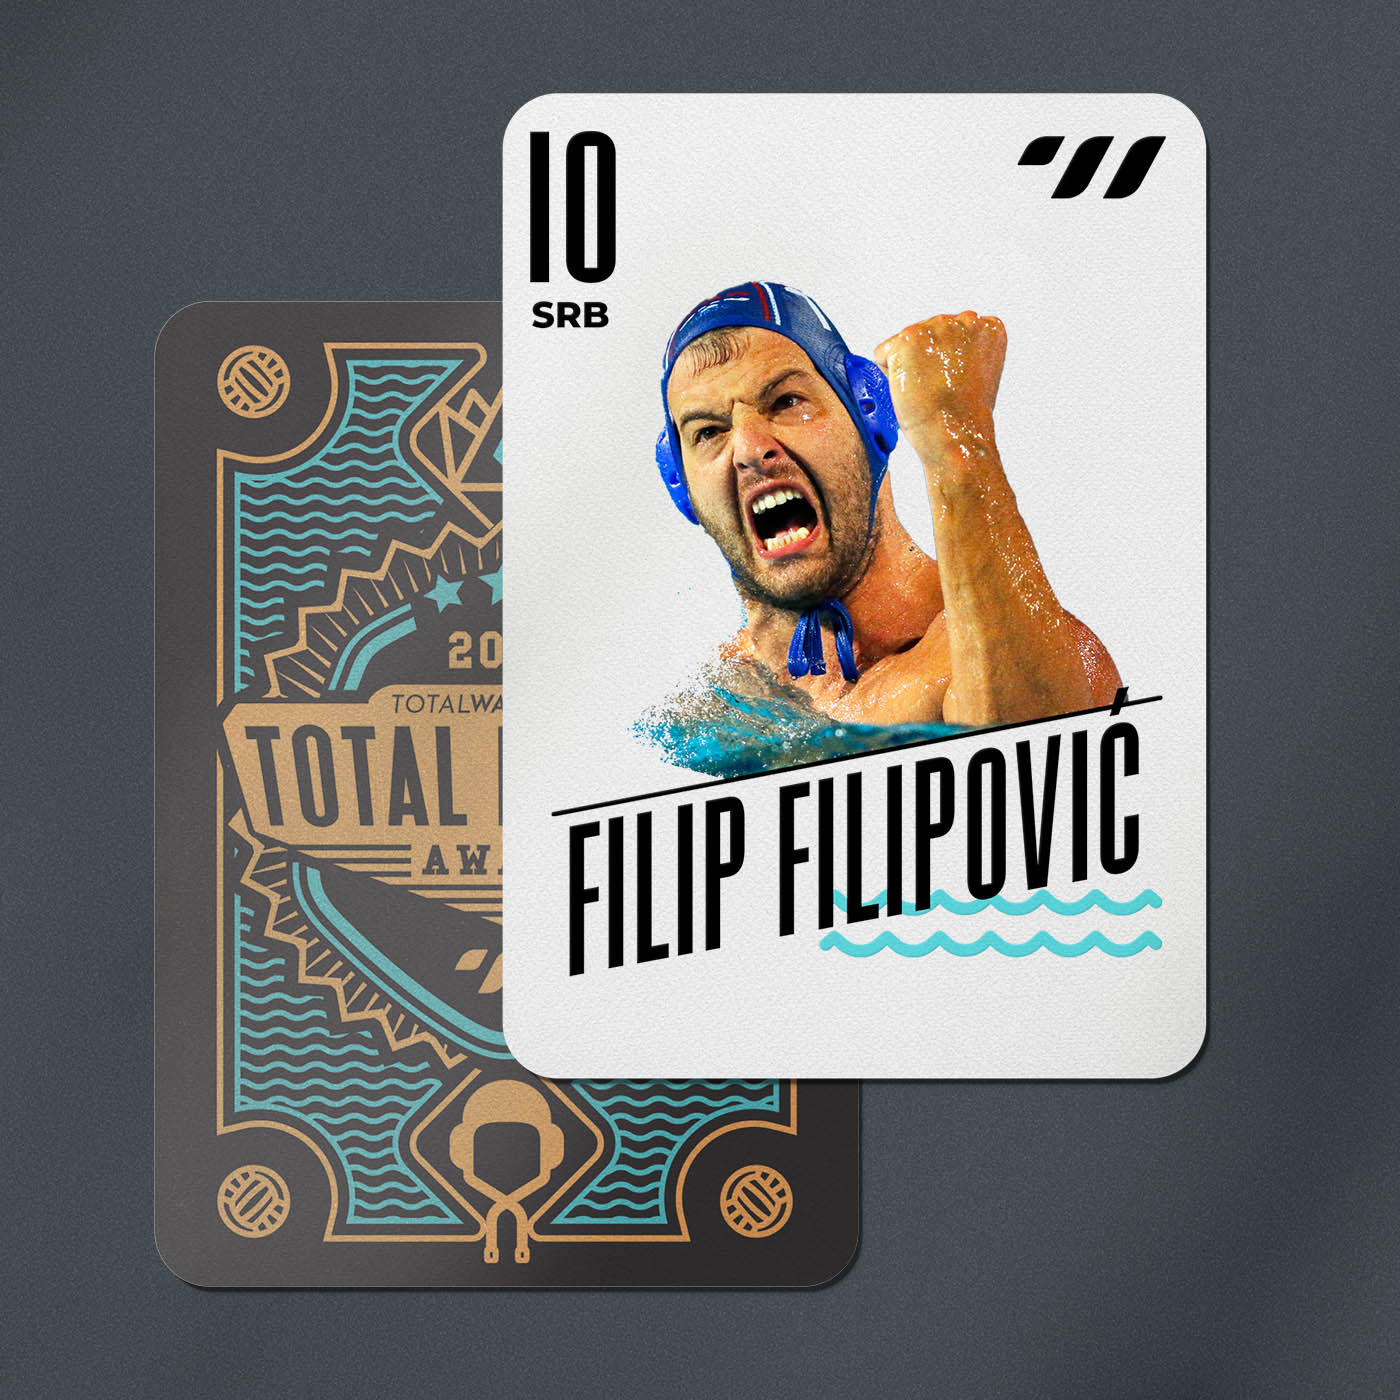 RIGHT SIDE - Filip Filipovic (SRB)